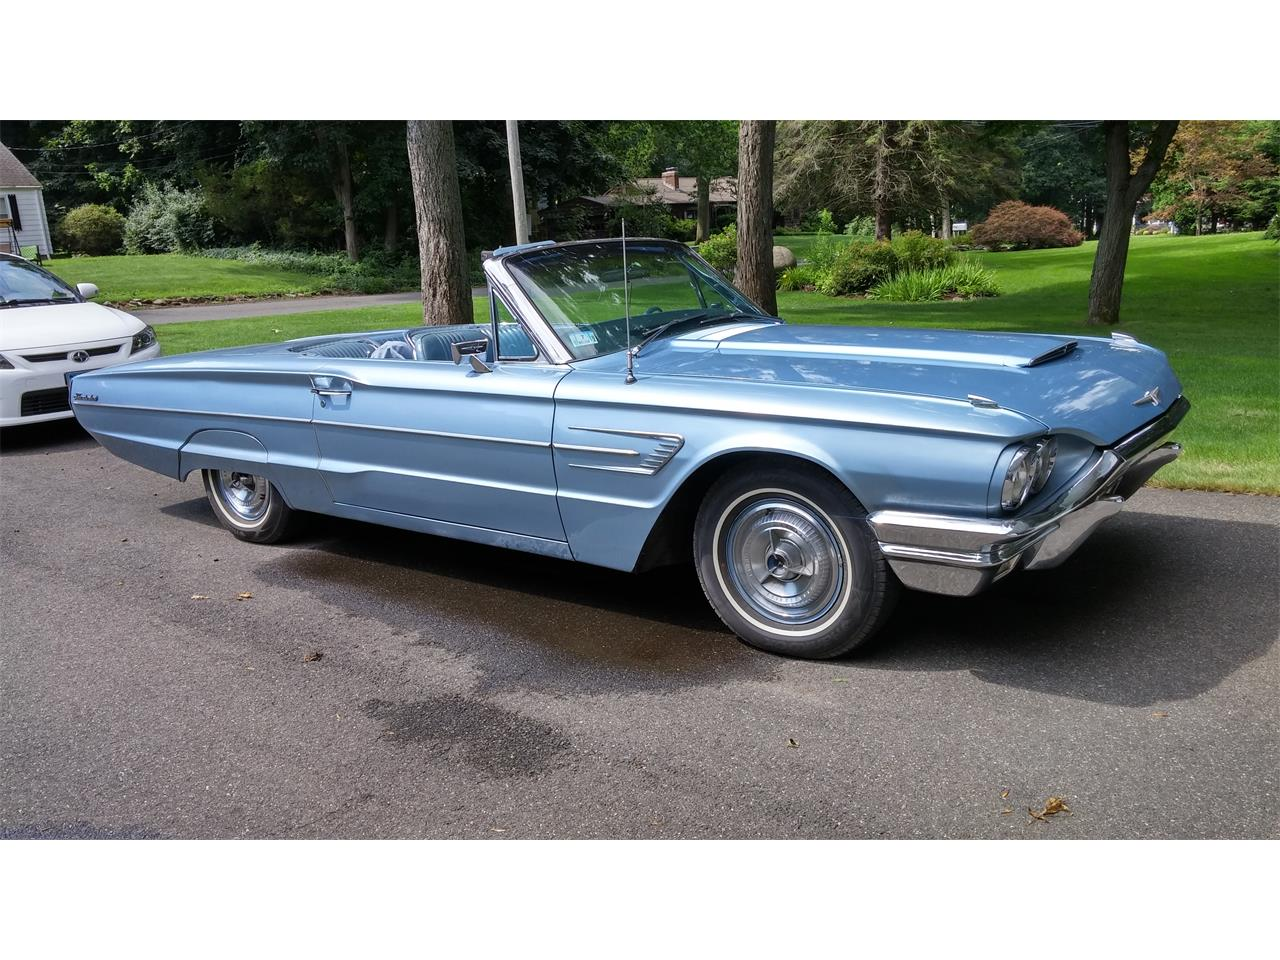 Large picture of 65 thunderbird lyx2